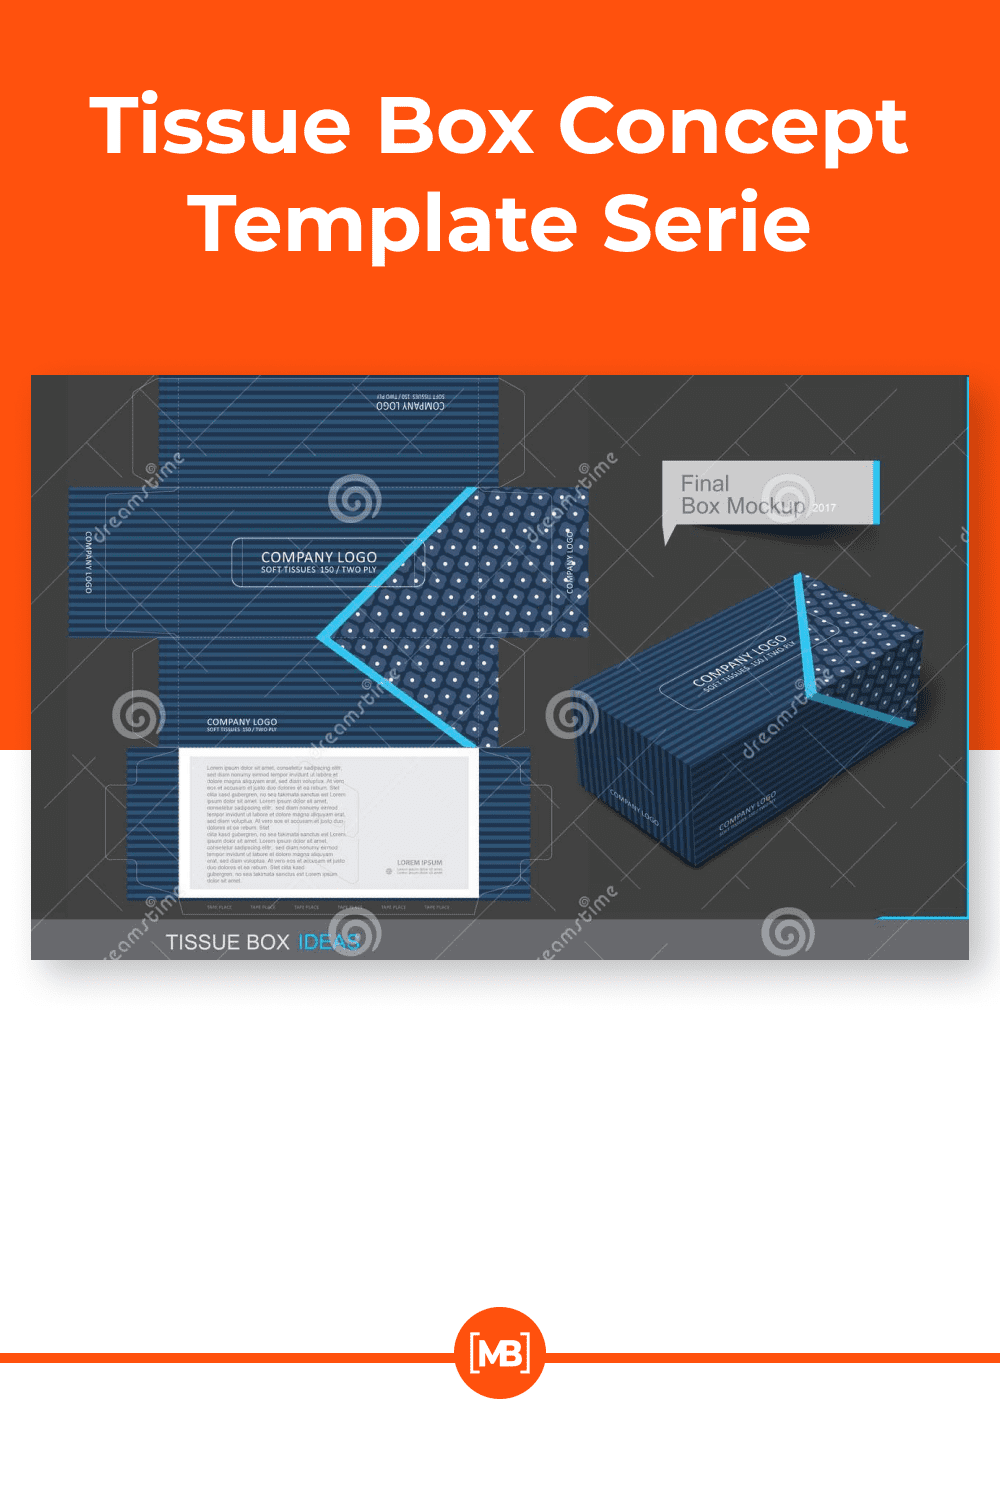 Tissue box template concept for business.